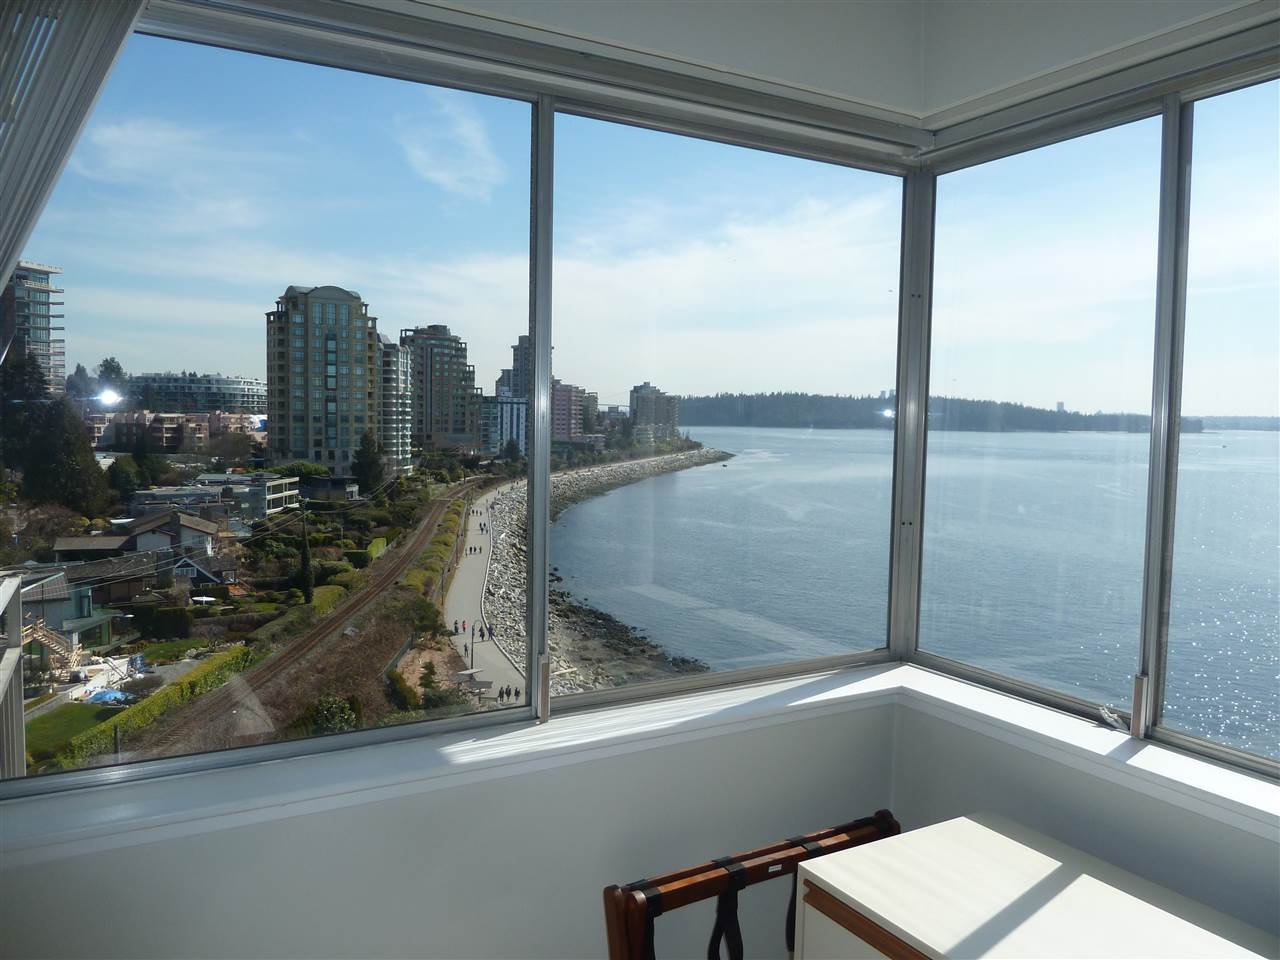 Photo 8: Photos: 905 150 24TH Street in West Vancouver: Dundarave Condo for sale : MLS®# R2427493